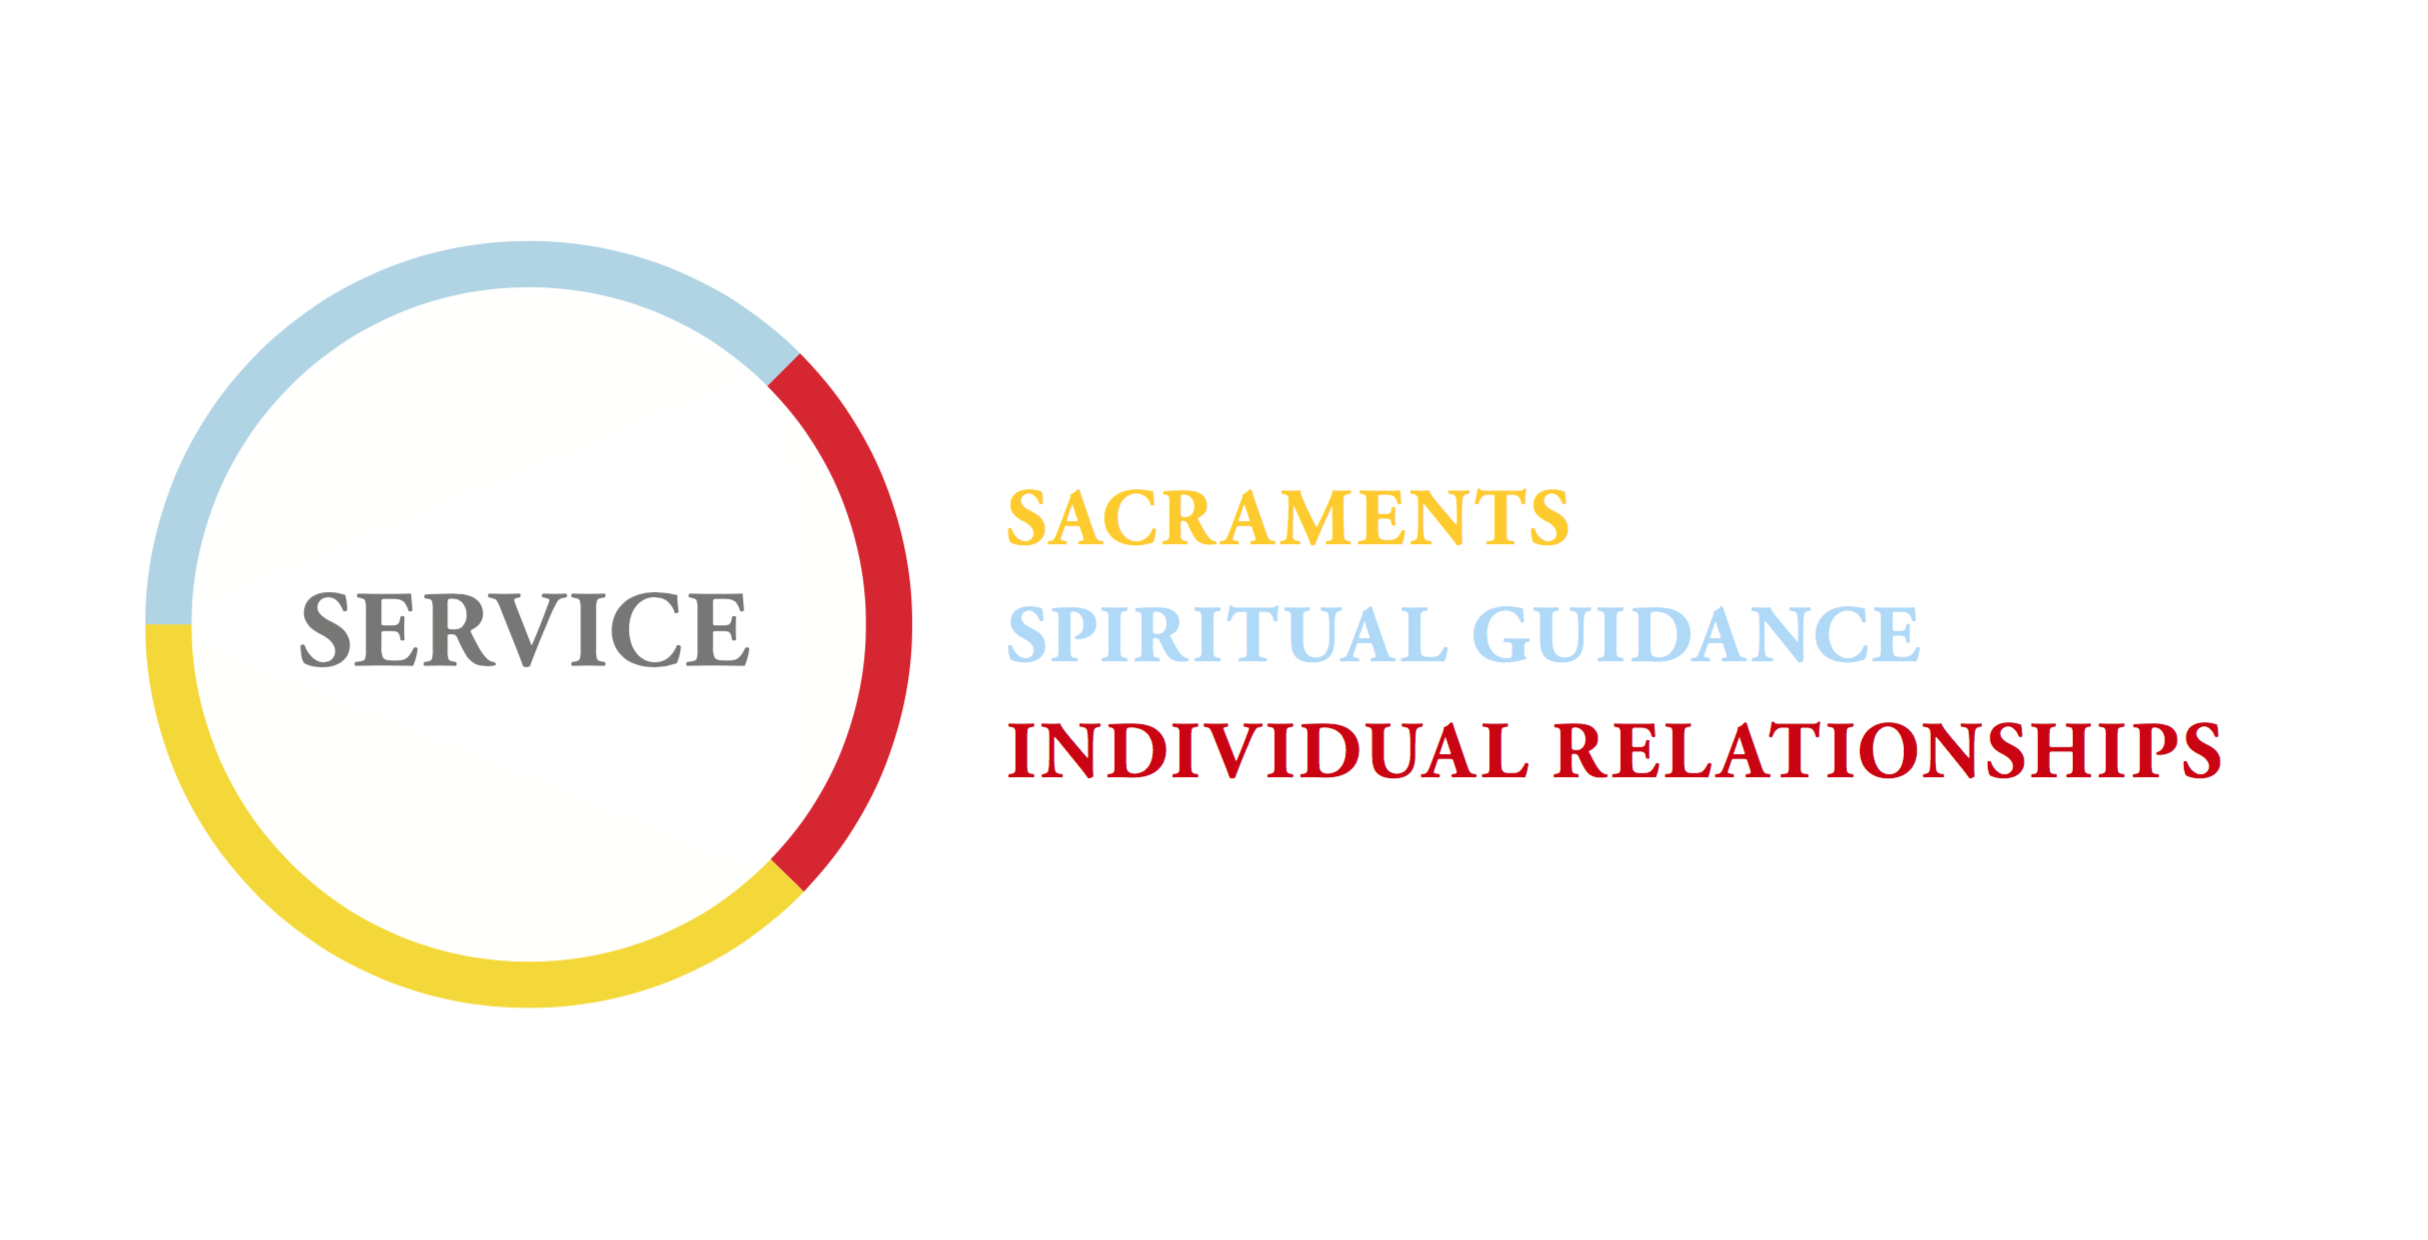 There are 3 ways through which priests deliver this service to their community